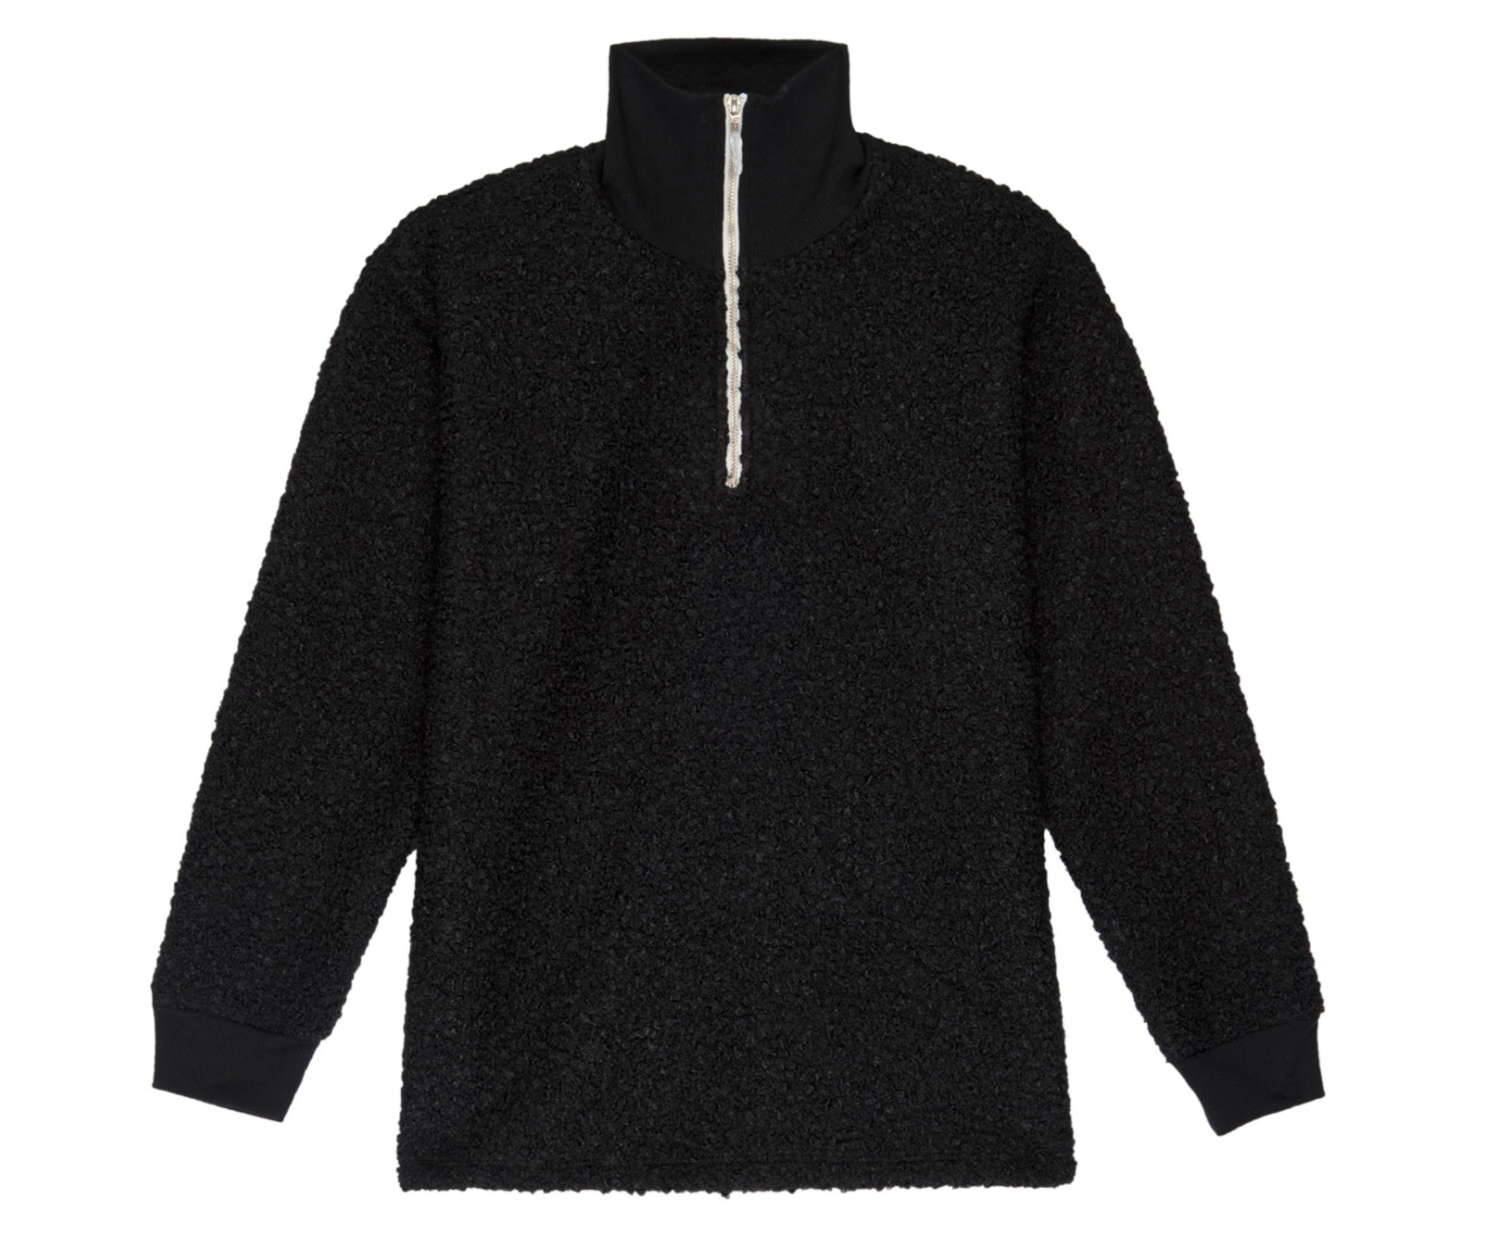 Donni Curly 1/2 Zip Pullover, Black